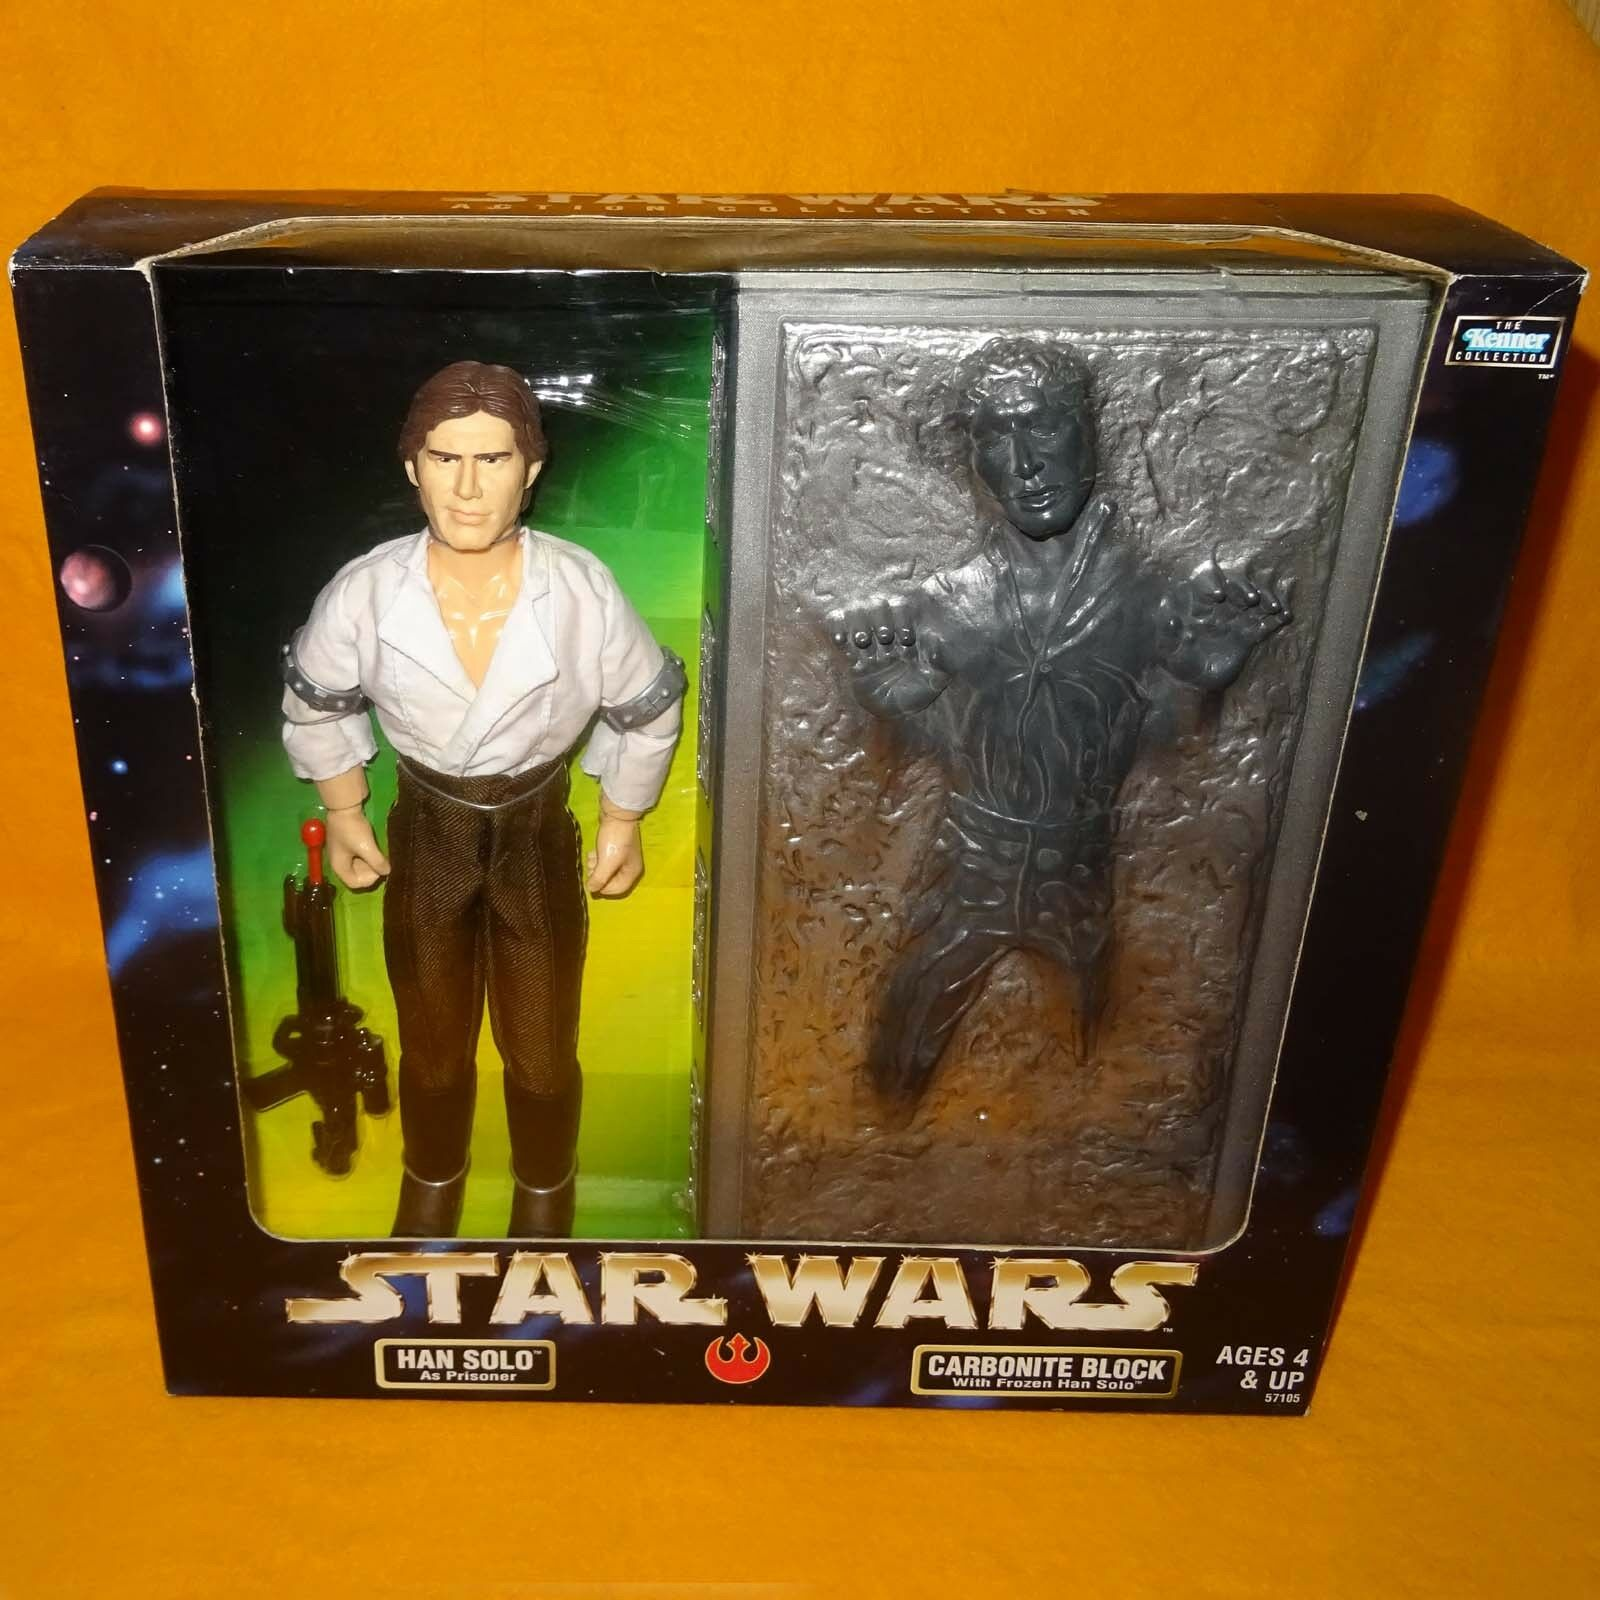 1998 HASBRO STAR WARS THE KENNER COLLECTION HAN SOLO & CARBONITE FIGURE BOXED